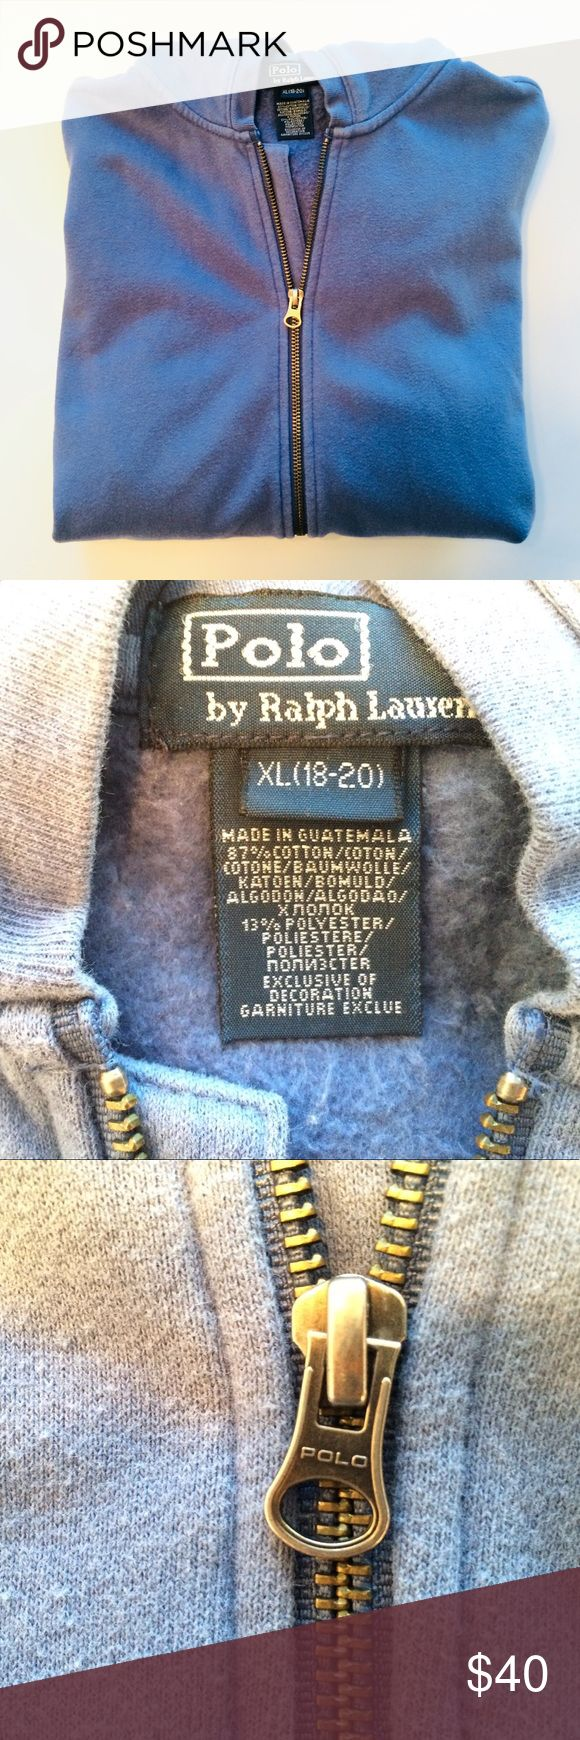 Polo Ralph Lauren Zipper Hoodie - Size XL (18-20) Polo Ralph Lauren Zipper Hoodie - Size XL (18-20). I am assuming that this is a ladies hoodie because of the size including (18-20). Great condition. Worn and laundered many times. No rips, no stains, no tears. Zipper works great. Love this color - sort of like wedgwood blue. Polo by Ralph Lauren Tops Sweatshirts & Hoodies